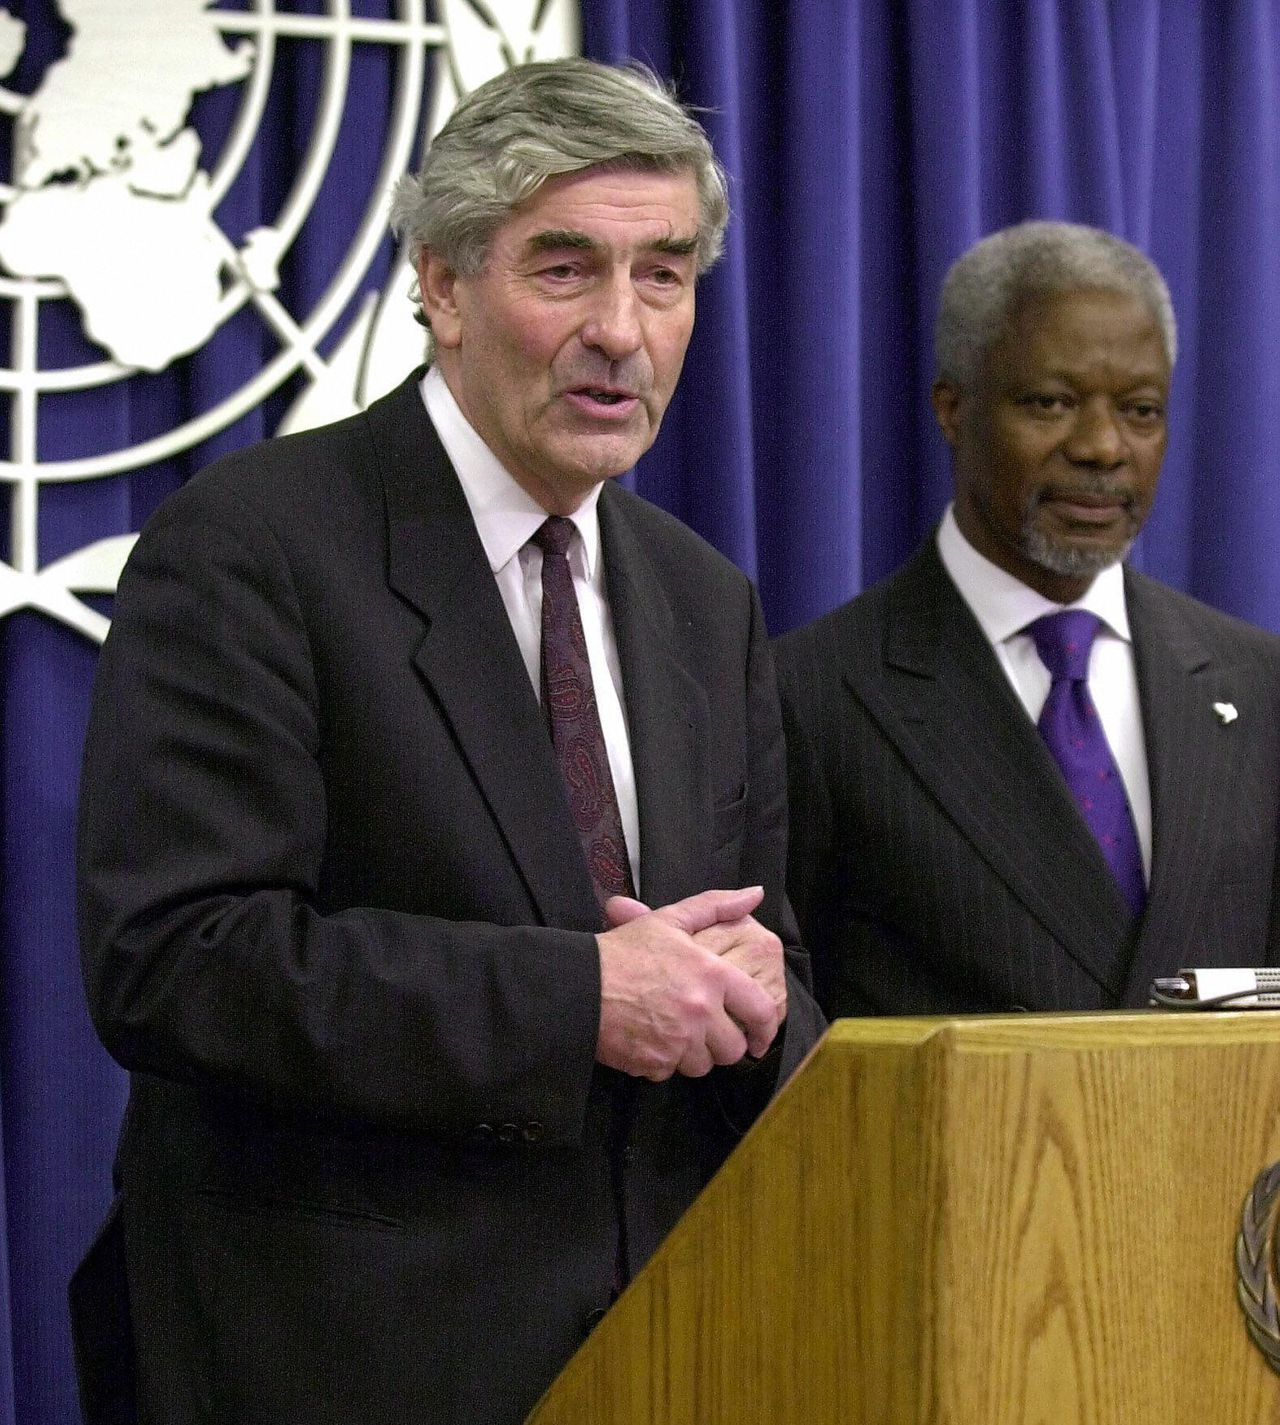 Former Dutch Prime Minister Ruud Lubbers (L) answers a question at a news conference after United Nations Secretary General Kofi Annan (R) introduced him as the new UN High Commissioner for Refugees at the UN 25 October, 2000. AFP PHOTO Henny Ray ABRAMS